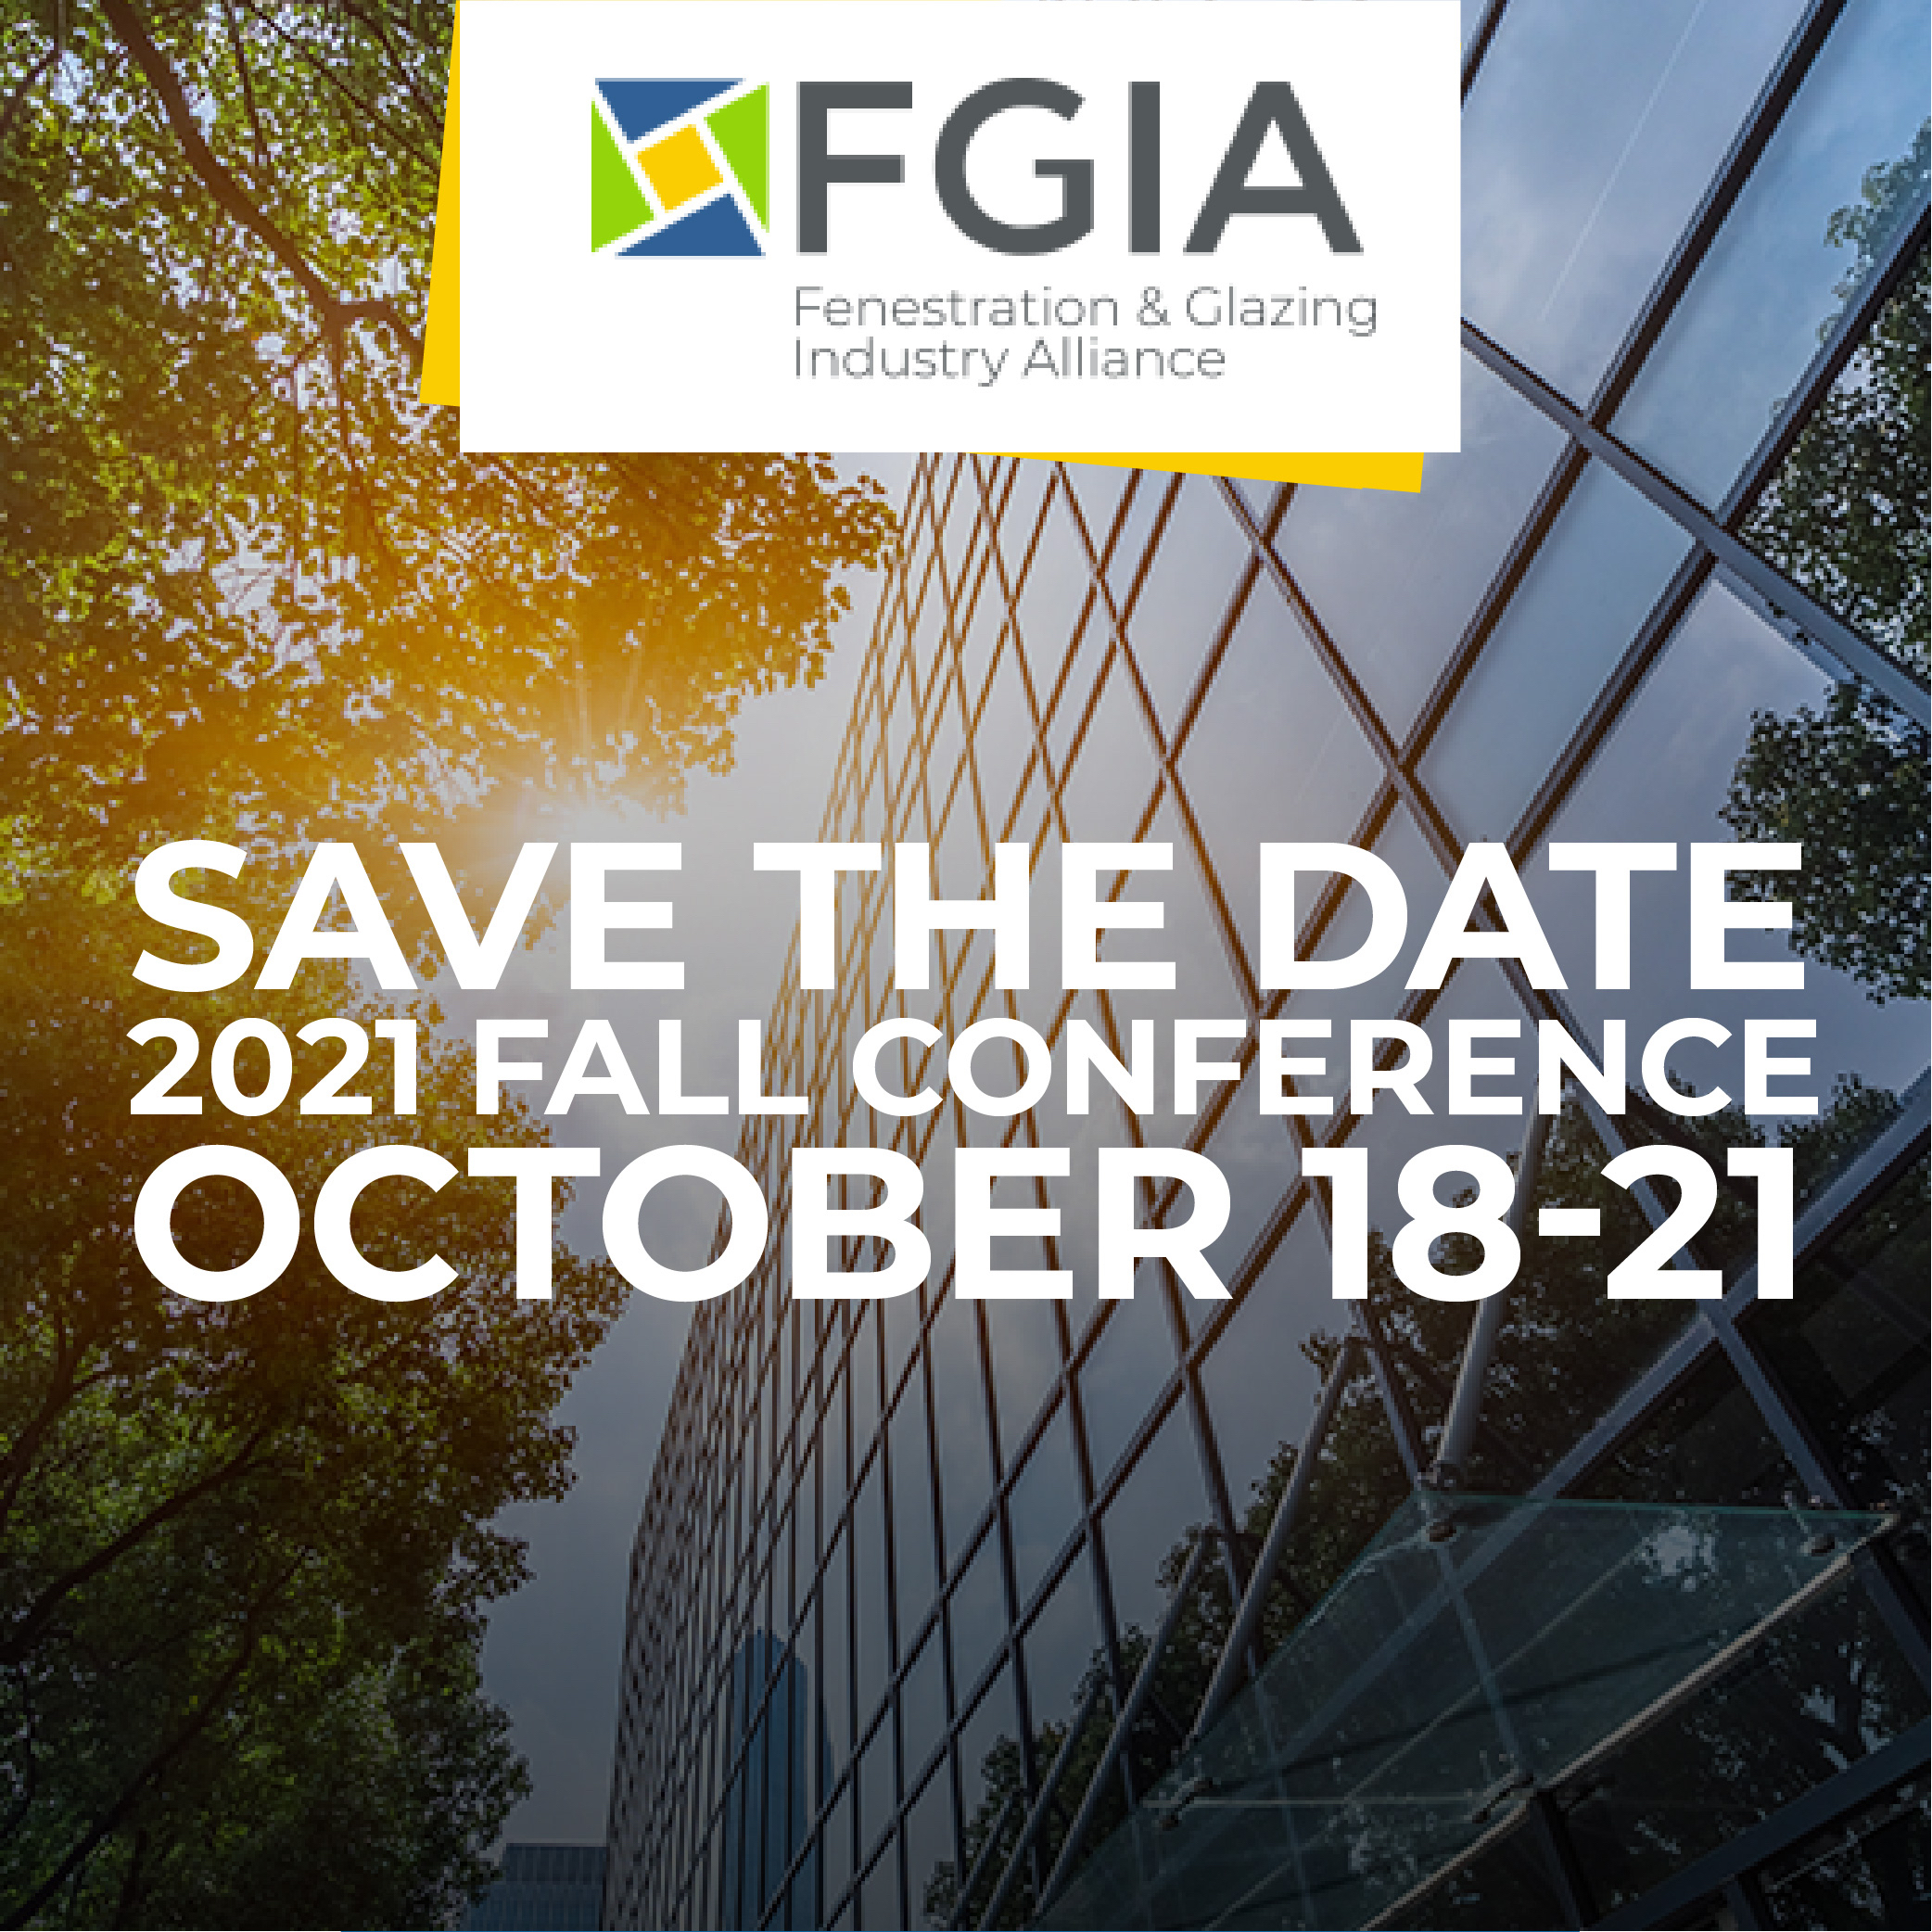 Fenestration and Glazing Industry Alliance (FGIA) 2021 Fall Conference